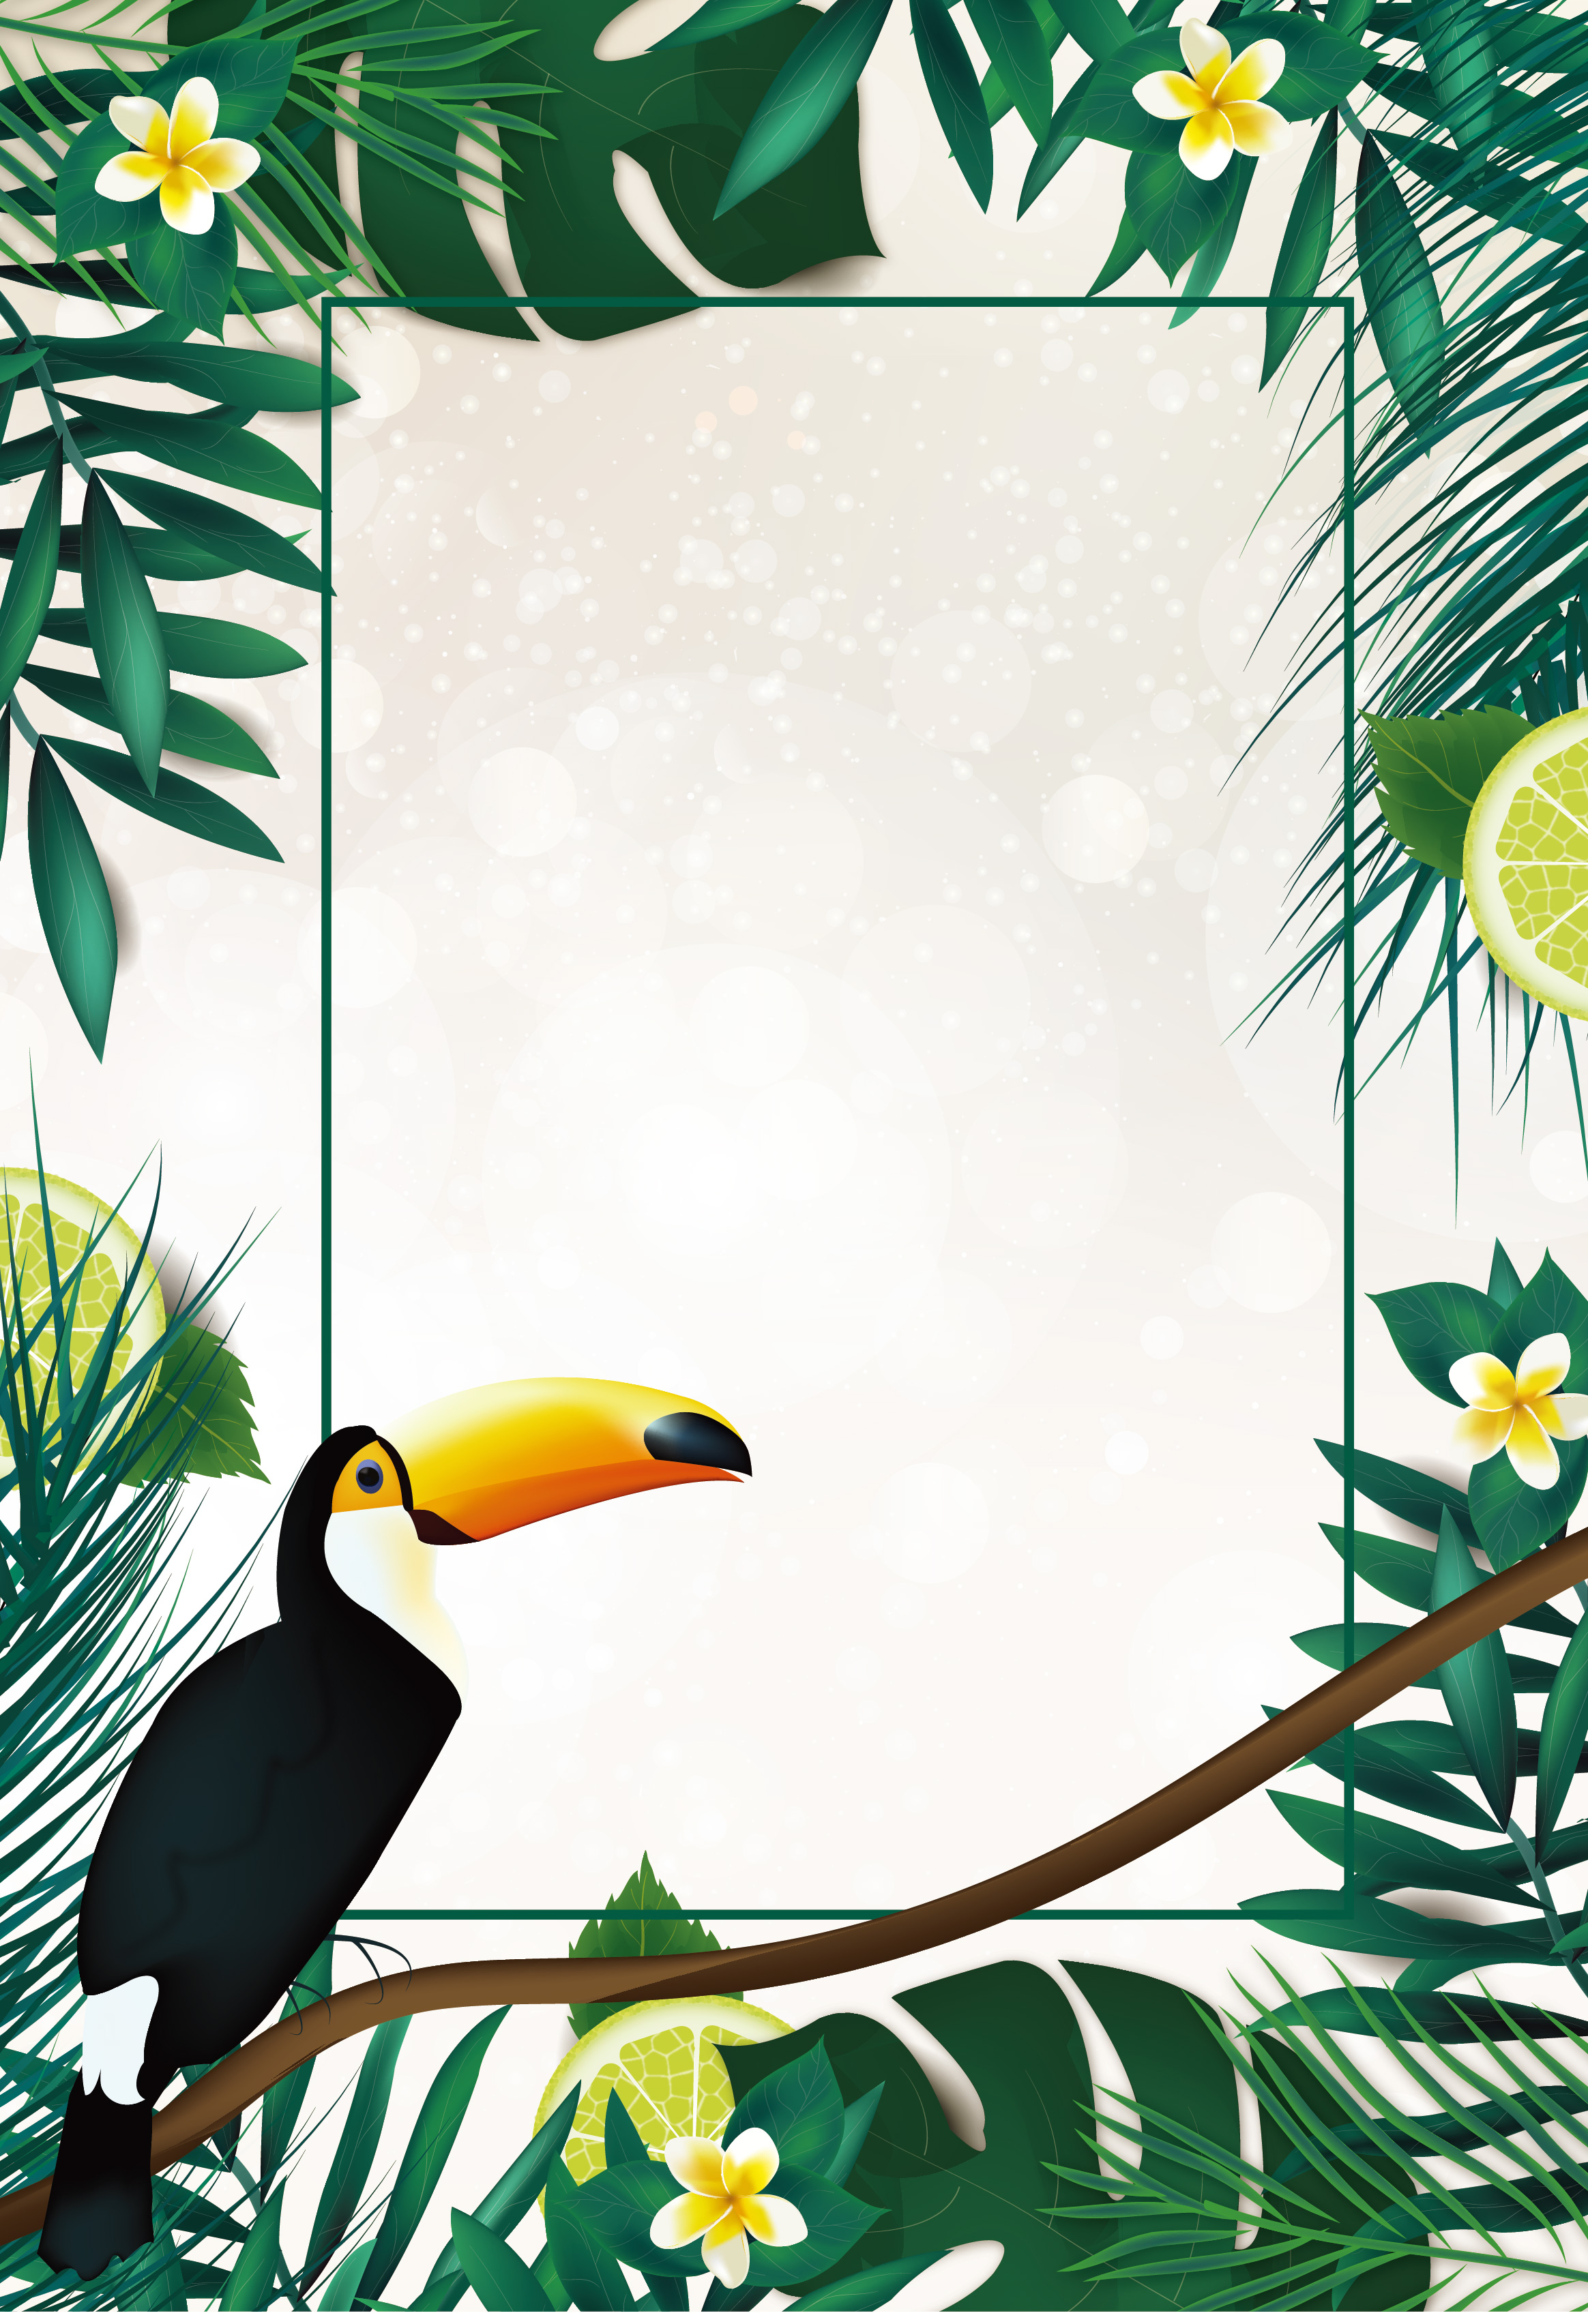 toucan bird pico wildlife background tropical pluma wild